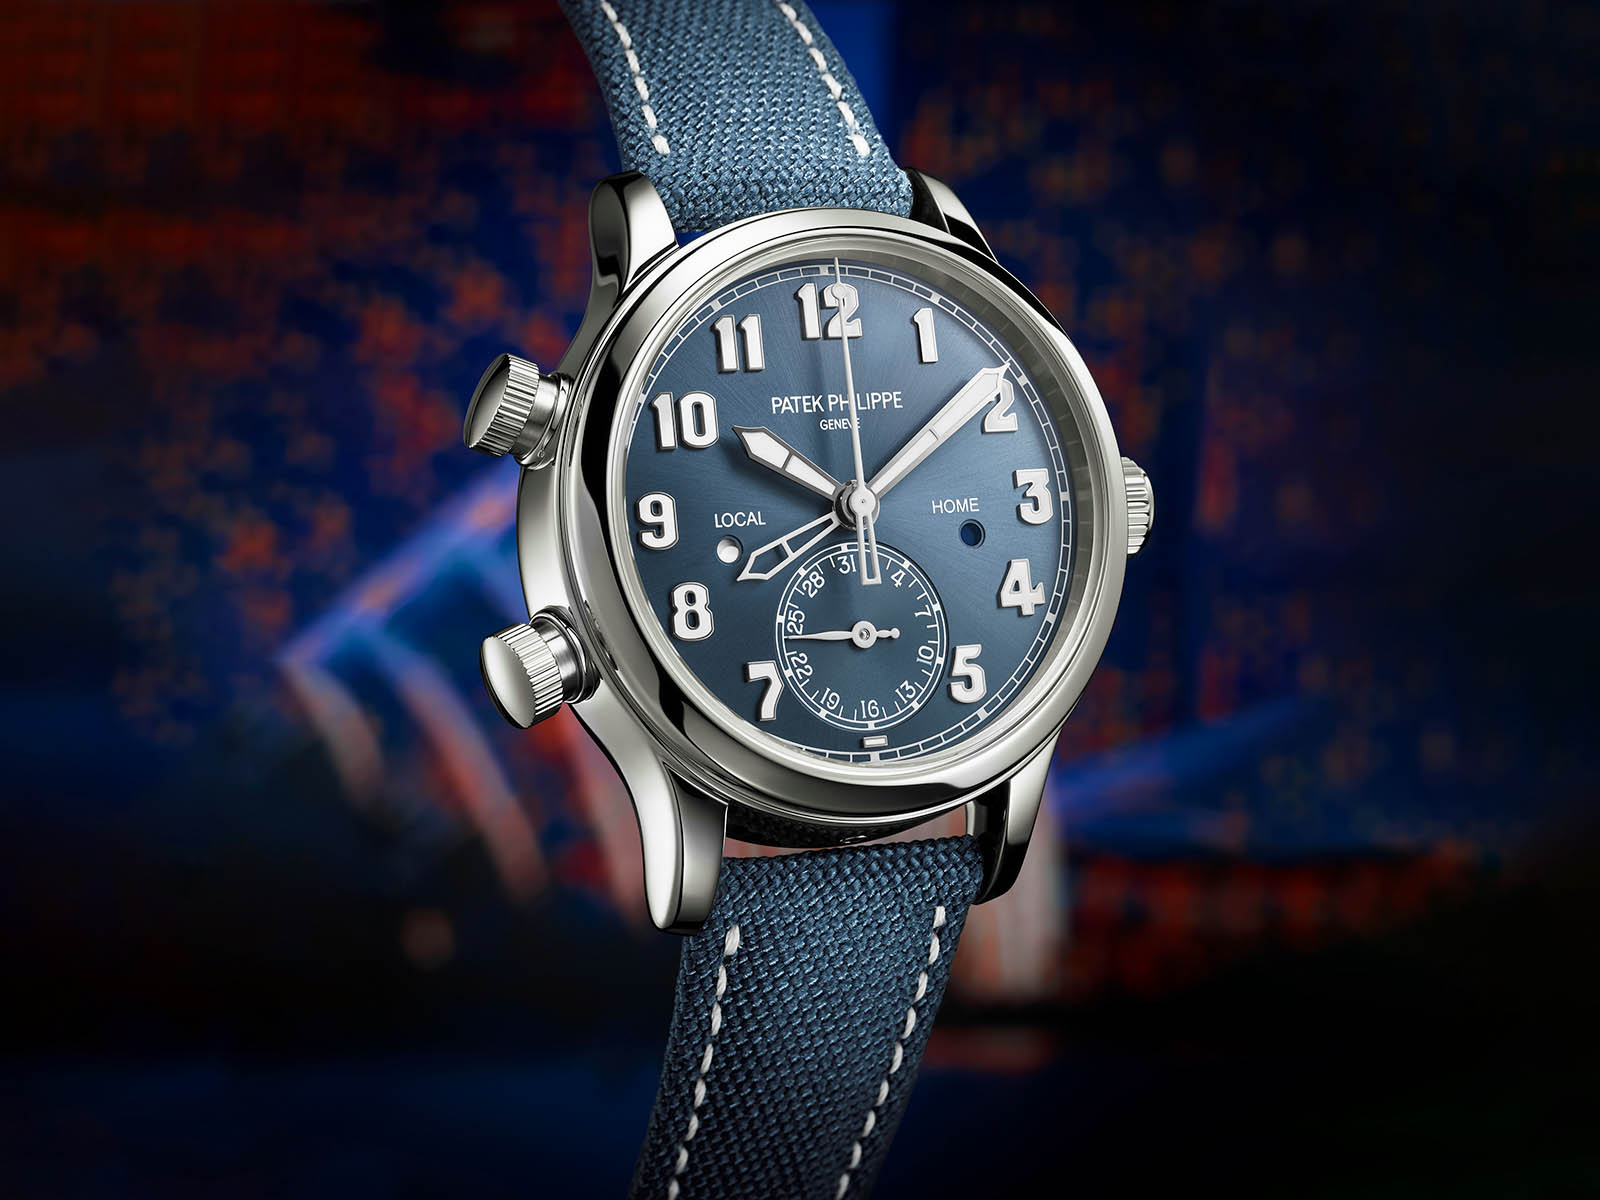 7234a-001-patek-philippe-calatrava-pilot-travel-time-2.jpg